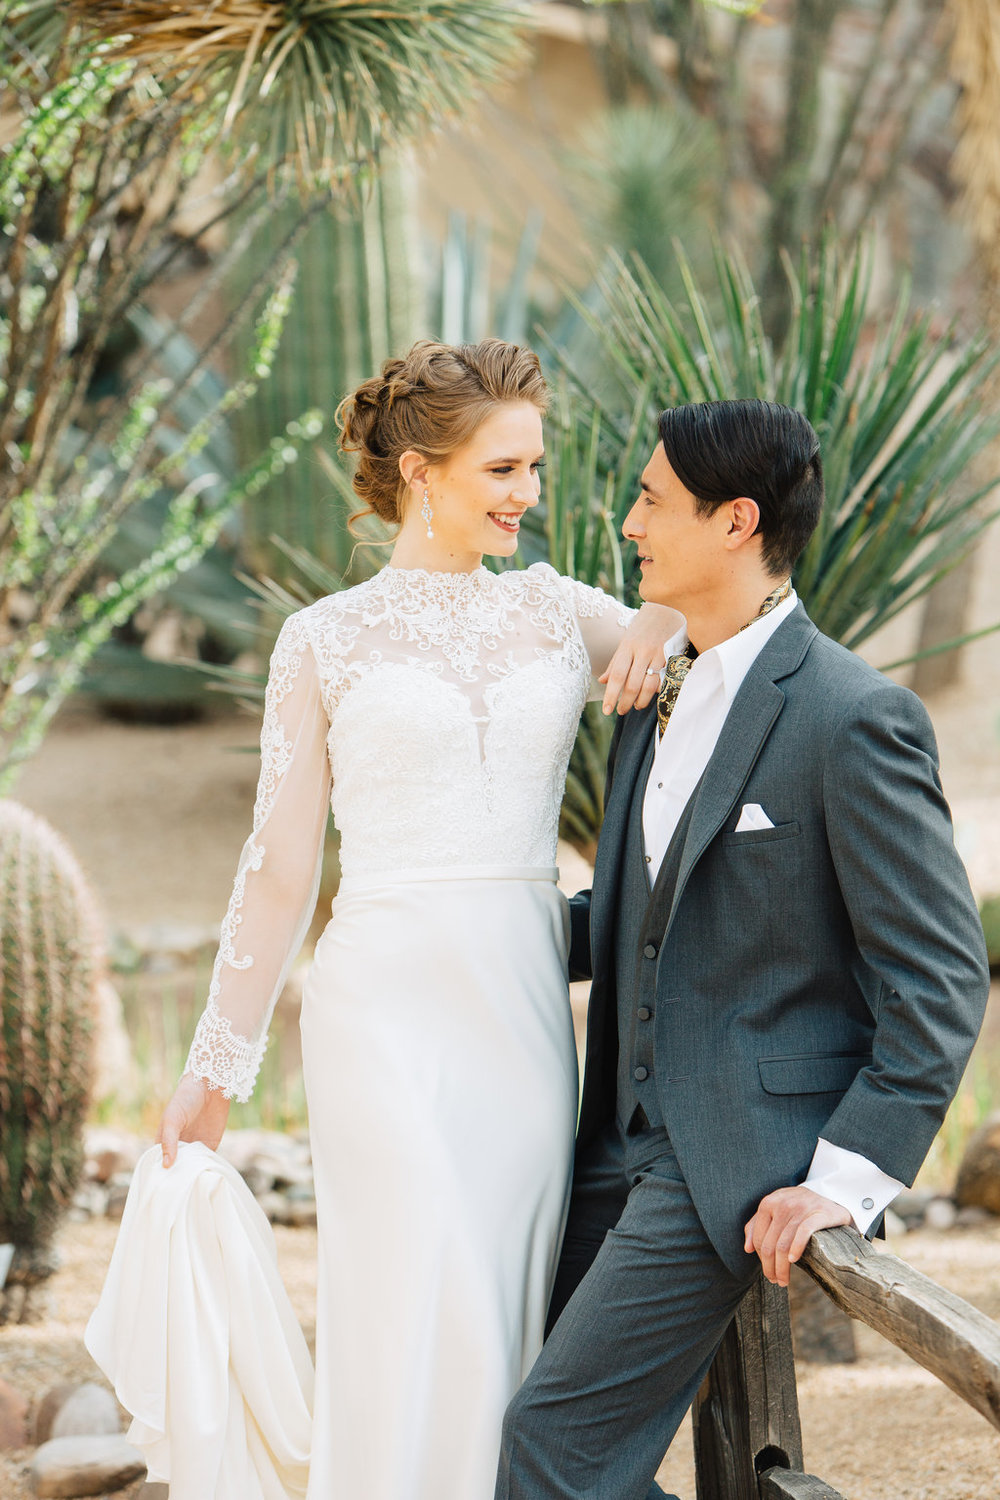 Bride, Groom, Phoenix Scottsdale Arizona Wedding Planner, Bridal gown, lace bridal gown, sleeved bridal gown, Groom attire, grey suite, southwest, ascot, groomsmen attire